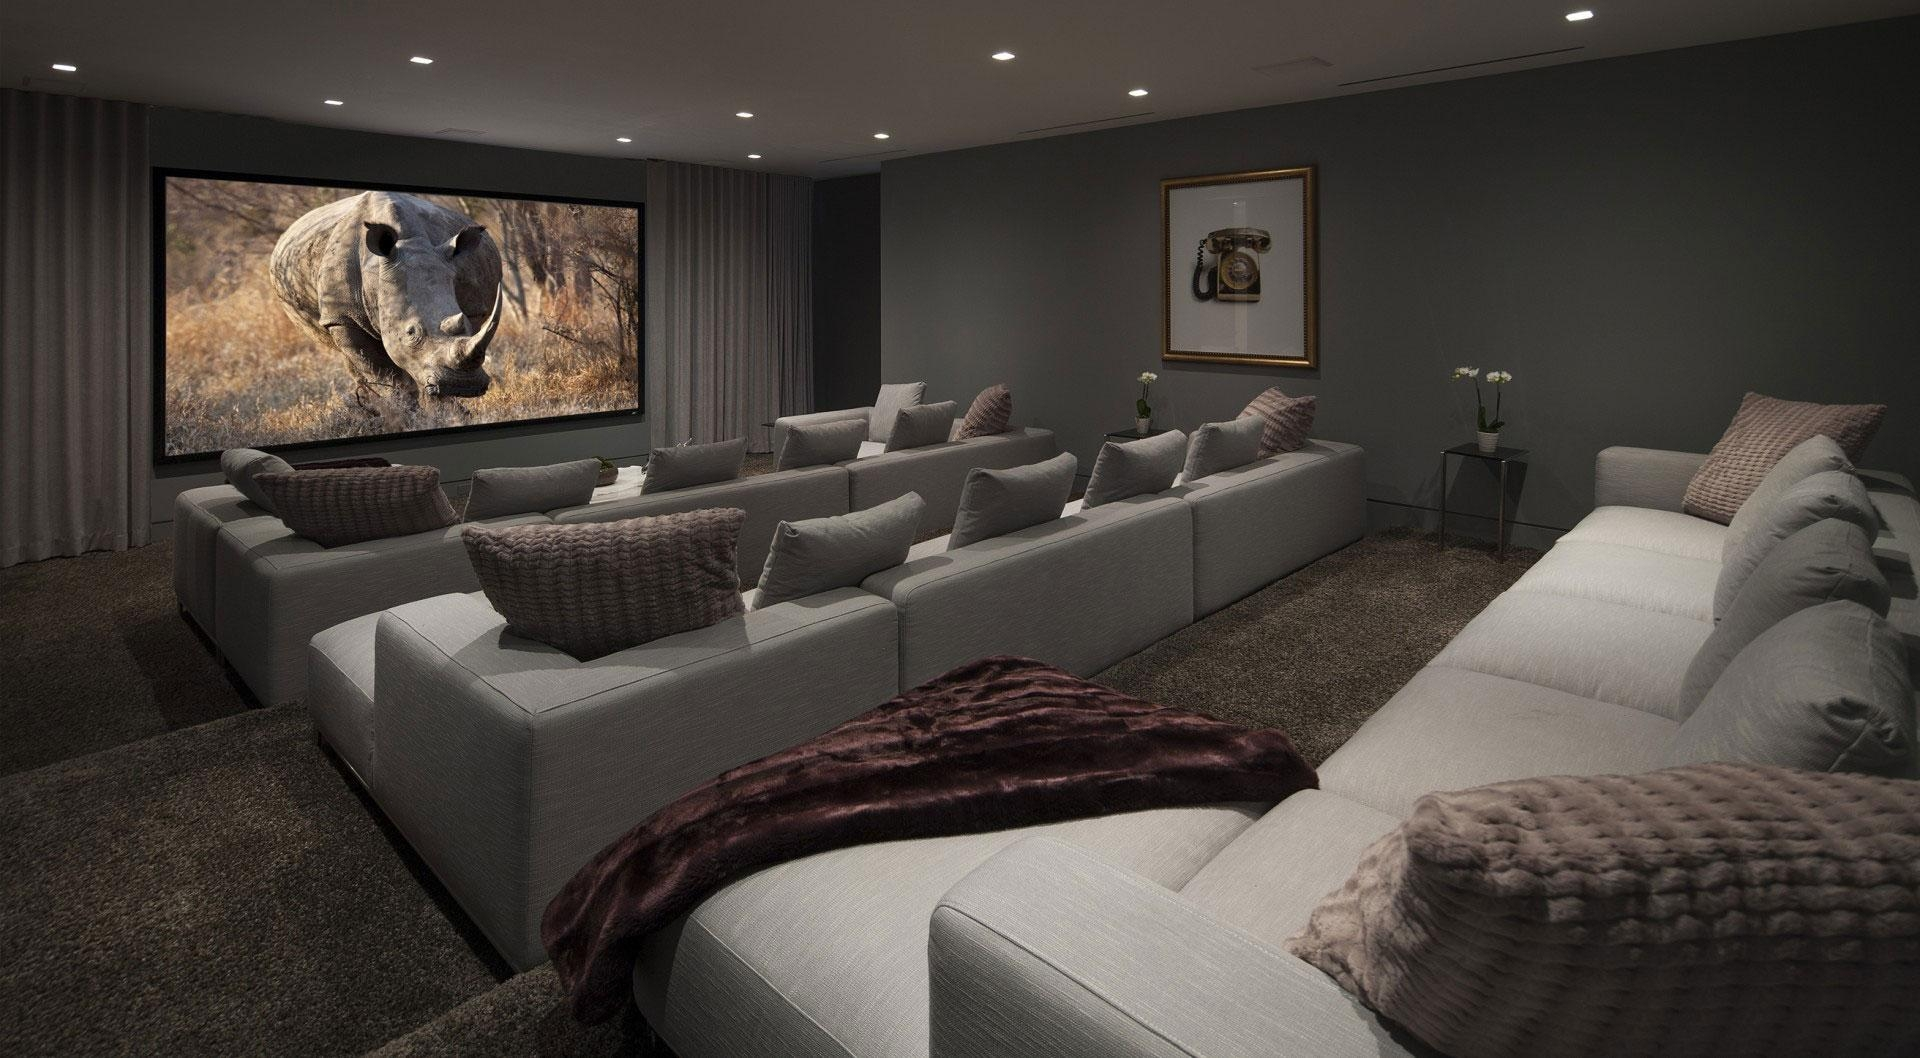 Home Media Room Designs Brilliant Home Media Room Designs – Home With Regard To Media Room Sectional (View 12 of 20)